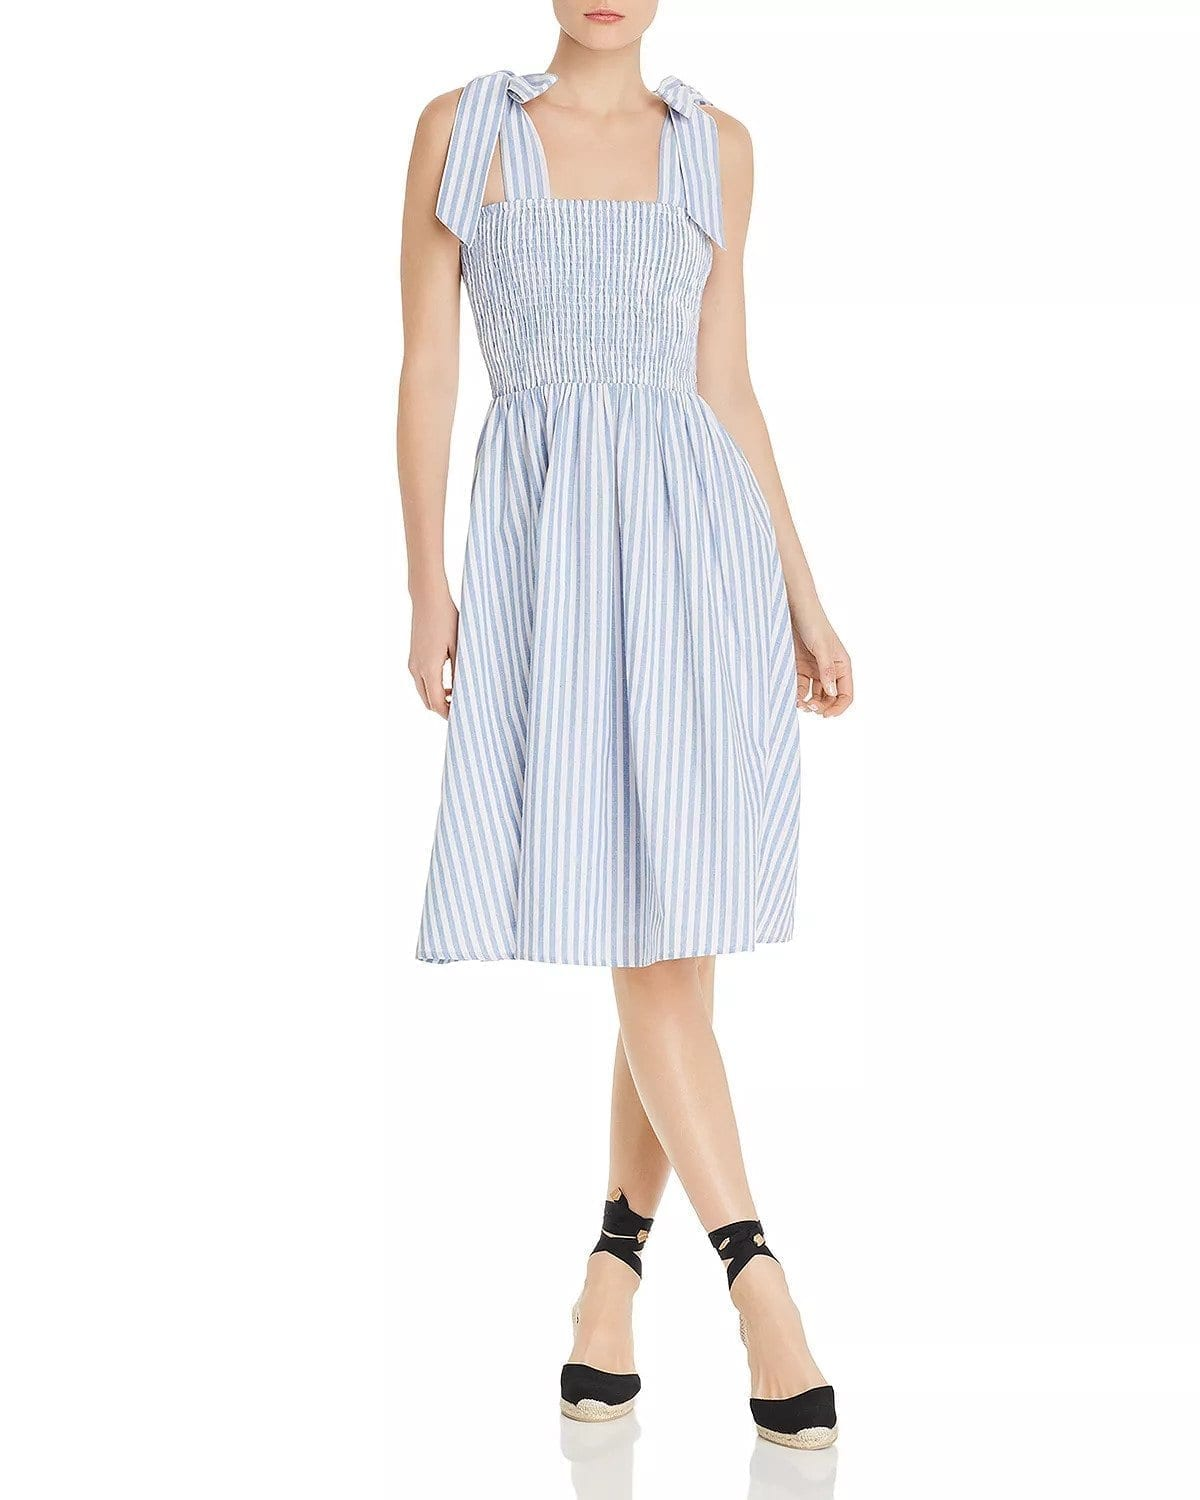 37ae0bf598e AQUA Sleeveless Striped Smocked Midi Light Blue   White Dress - We ...